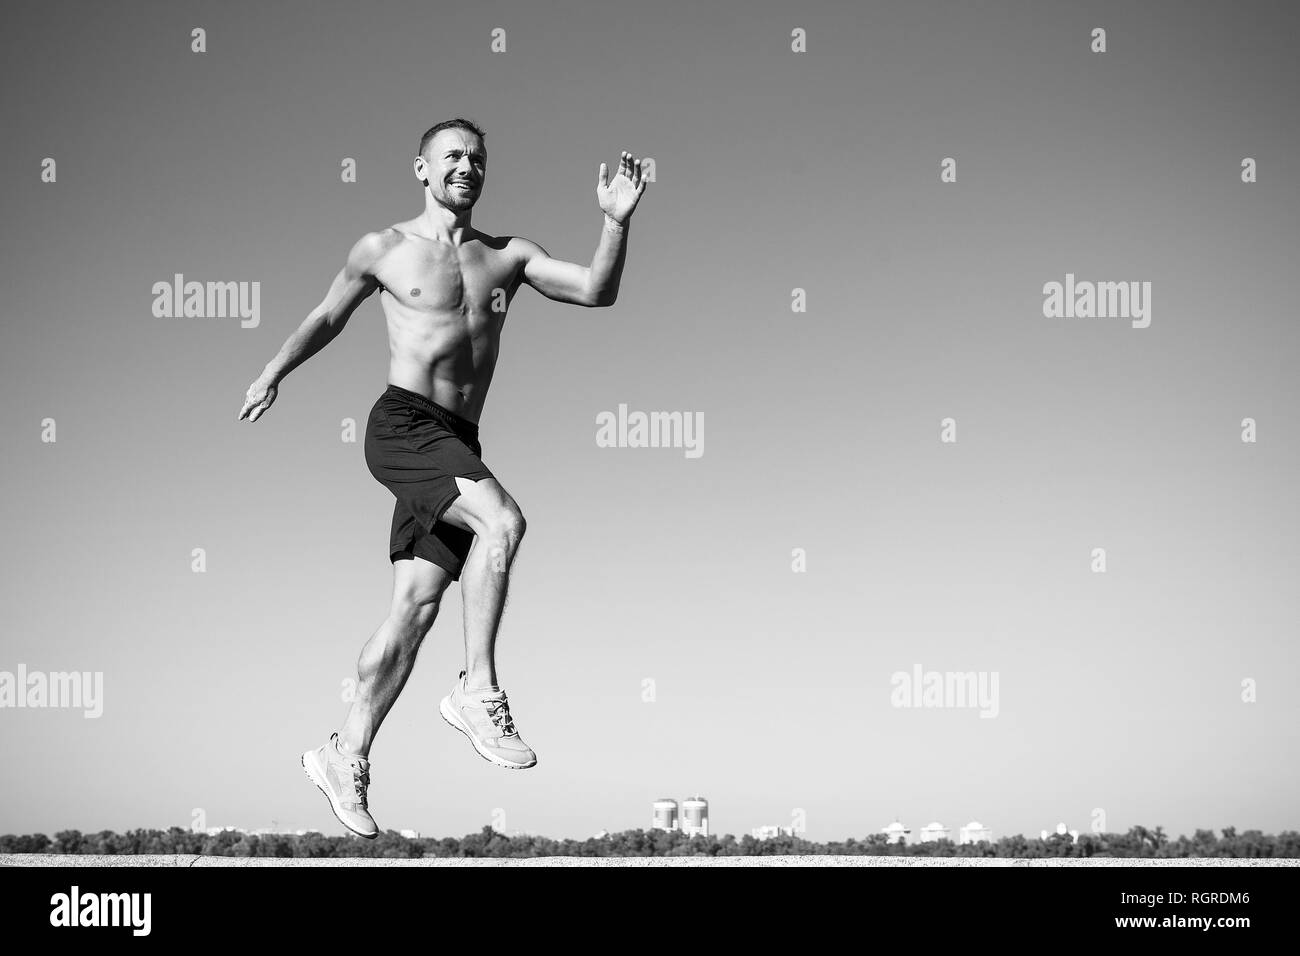 My favorite way to unwind is by going running. Success in sport. Muscular man jump in air. Man with muscular energy. Sport and fitness. The foundation of success in life is good health, copy space. - Stock Image